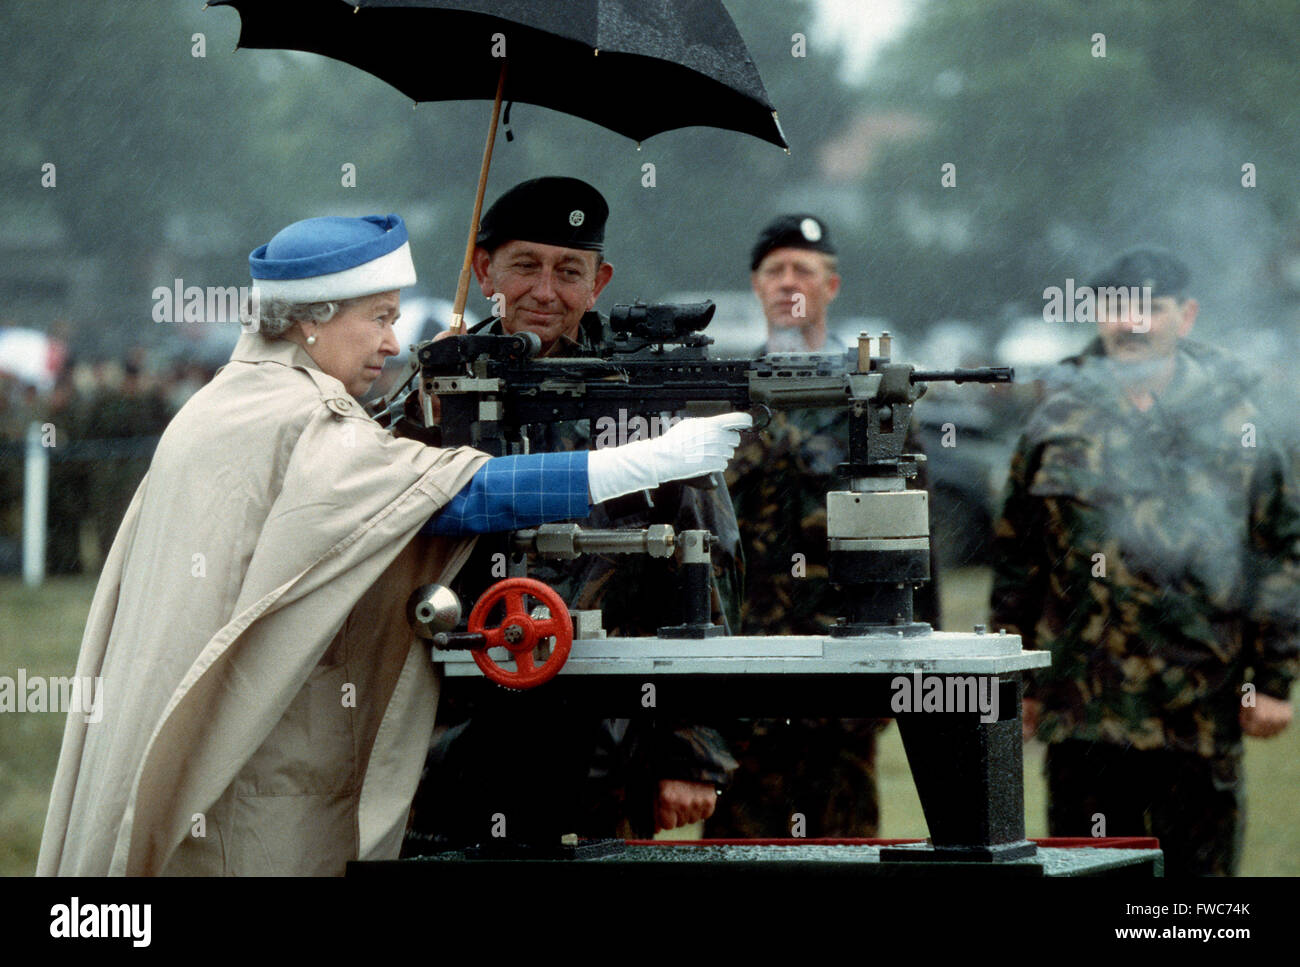 HM Queen Elizabeth II fires a rifle during a visit to the Army rifle association at Bisley, England July 1993 Stock Photo